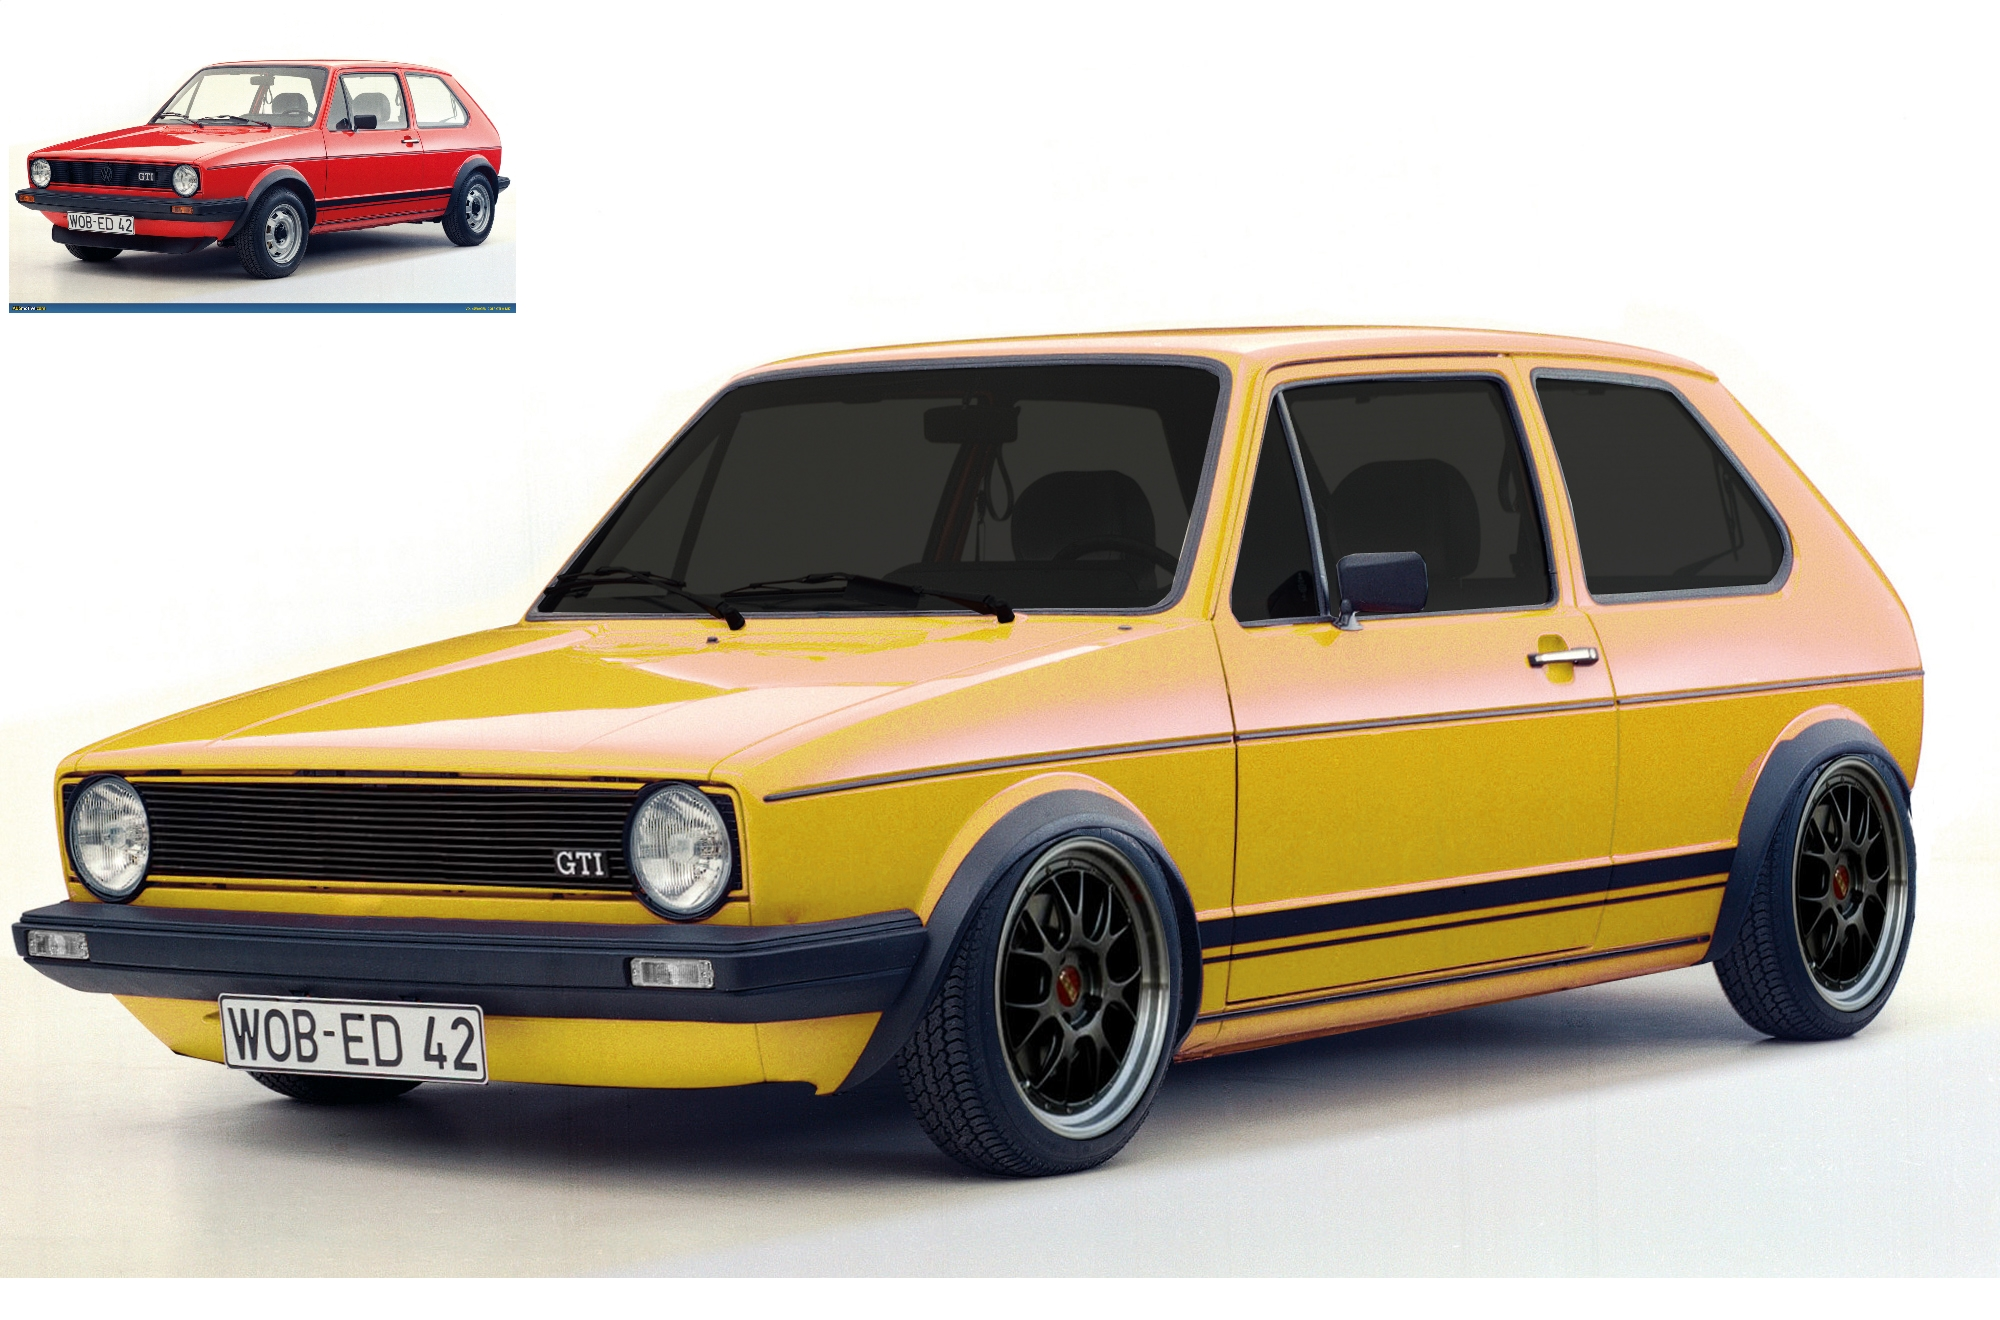 golf 1 gti vw golf 1 gti photos 10 on better parts ltd vw golf 1 gti photos 2 on better parts. Black Bedroom Furniture Sets. Home Design Ideas